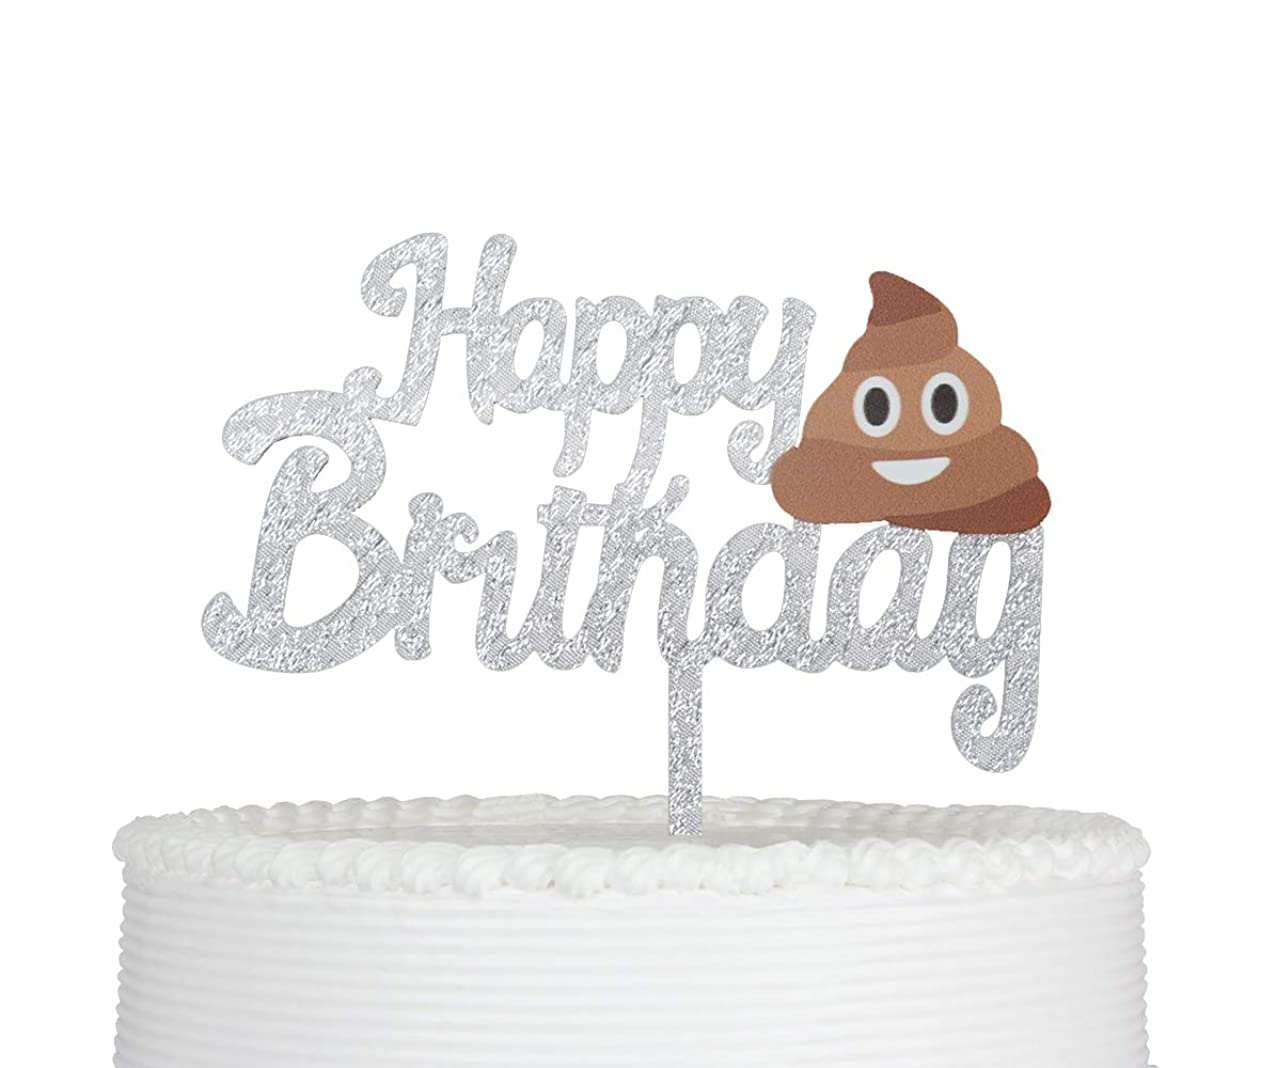 Happy Birthday Cake Topper Cartoon Acrylic Funny Cake Topper Party Decoration Supplies Silver Glitter